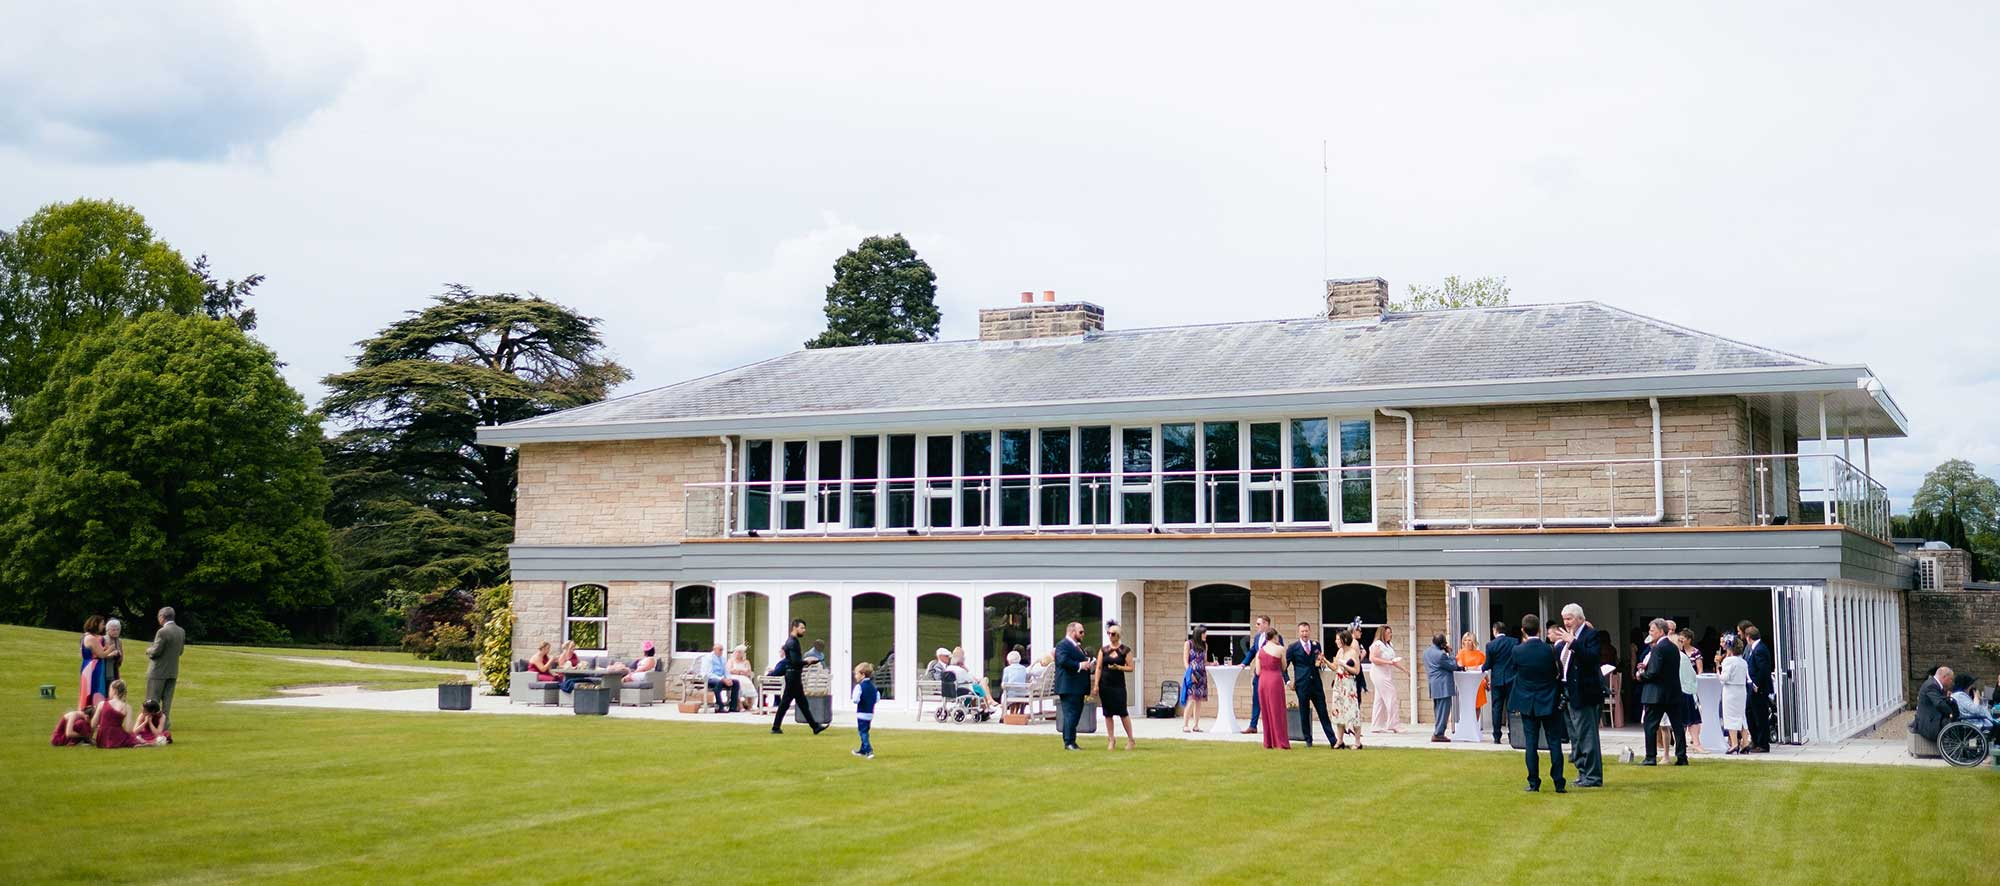 Arley House Wedding Venue